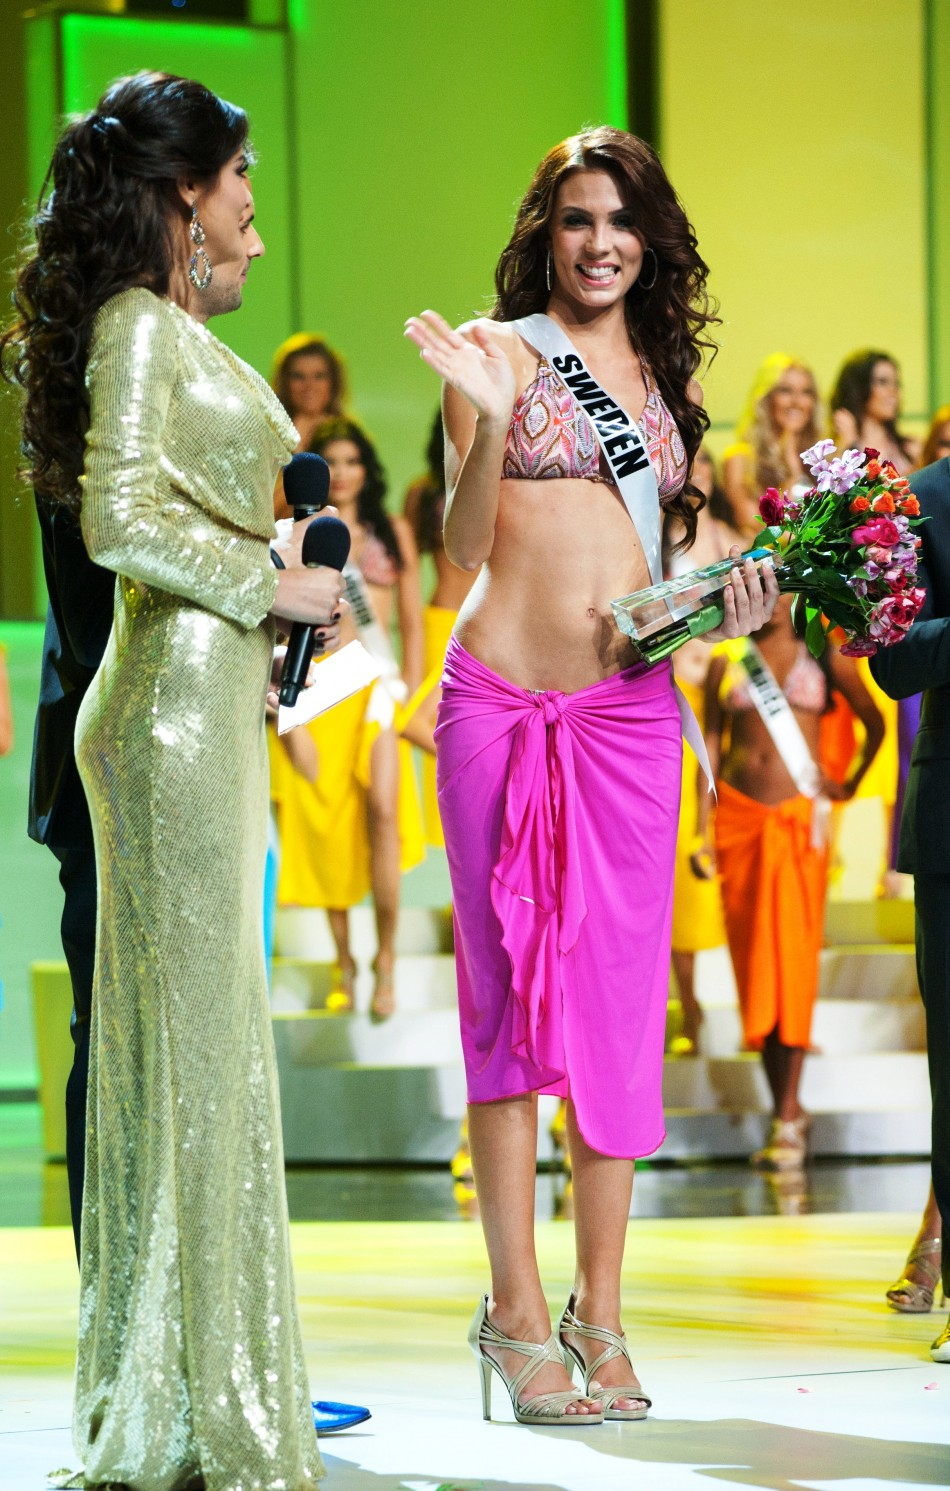 Miss Sweden 2011 won the Miss Photogenic award